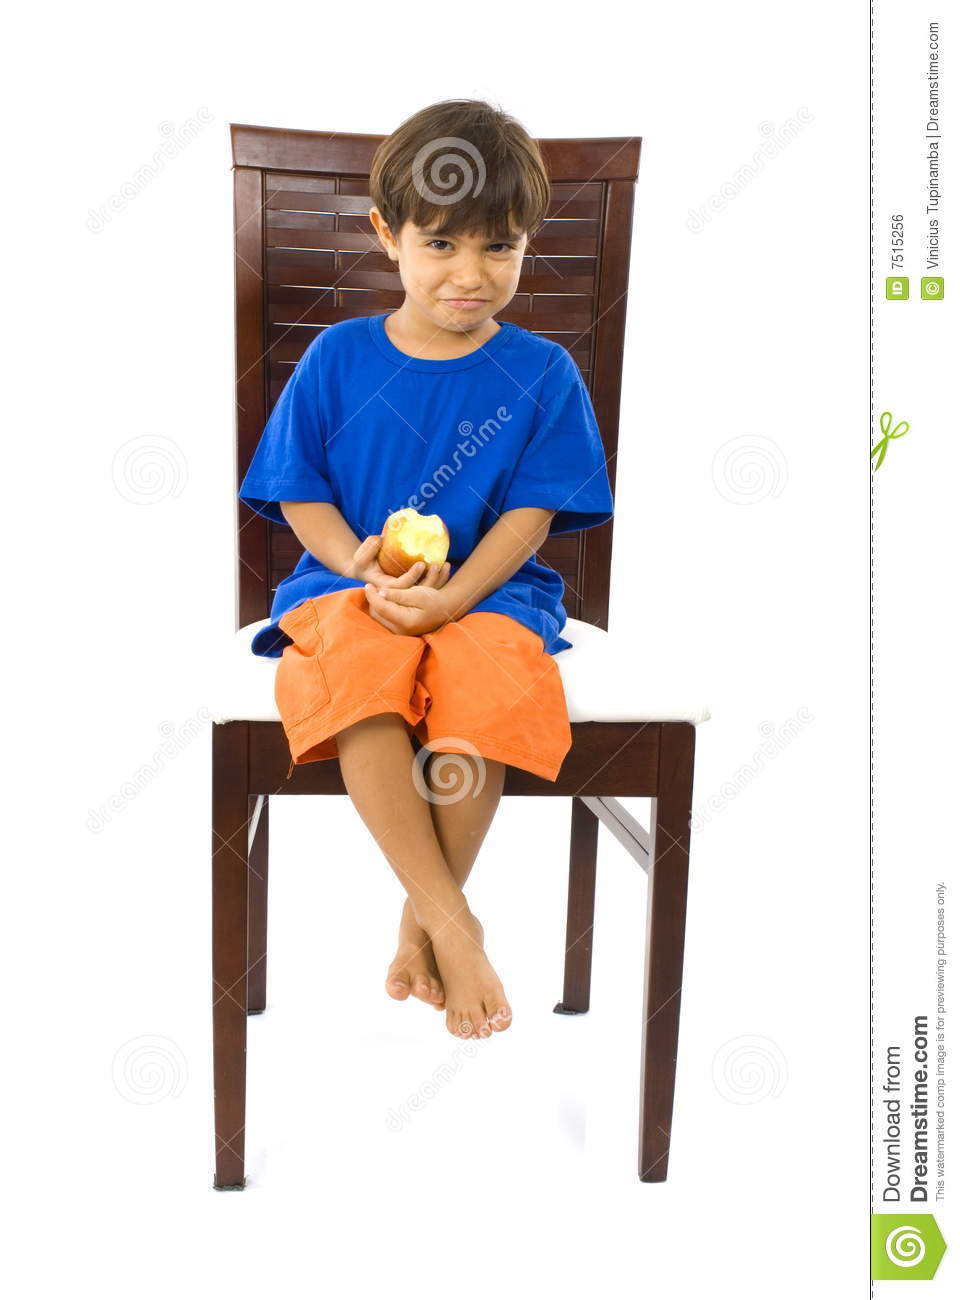 Child and chair royalty free stock image image 7515256 for Child on chair